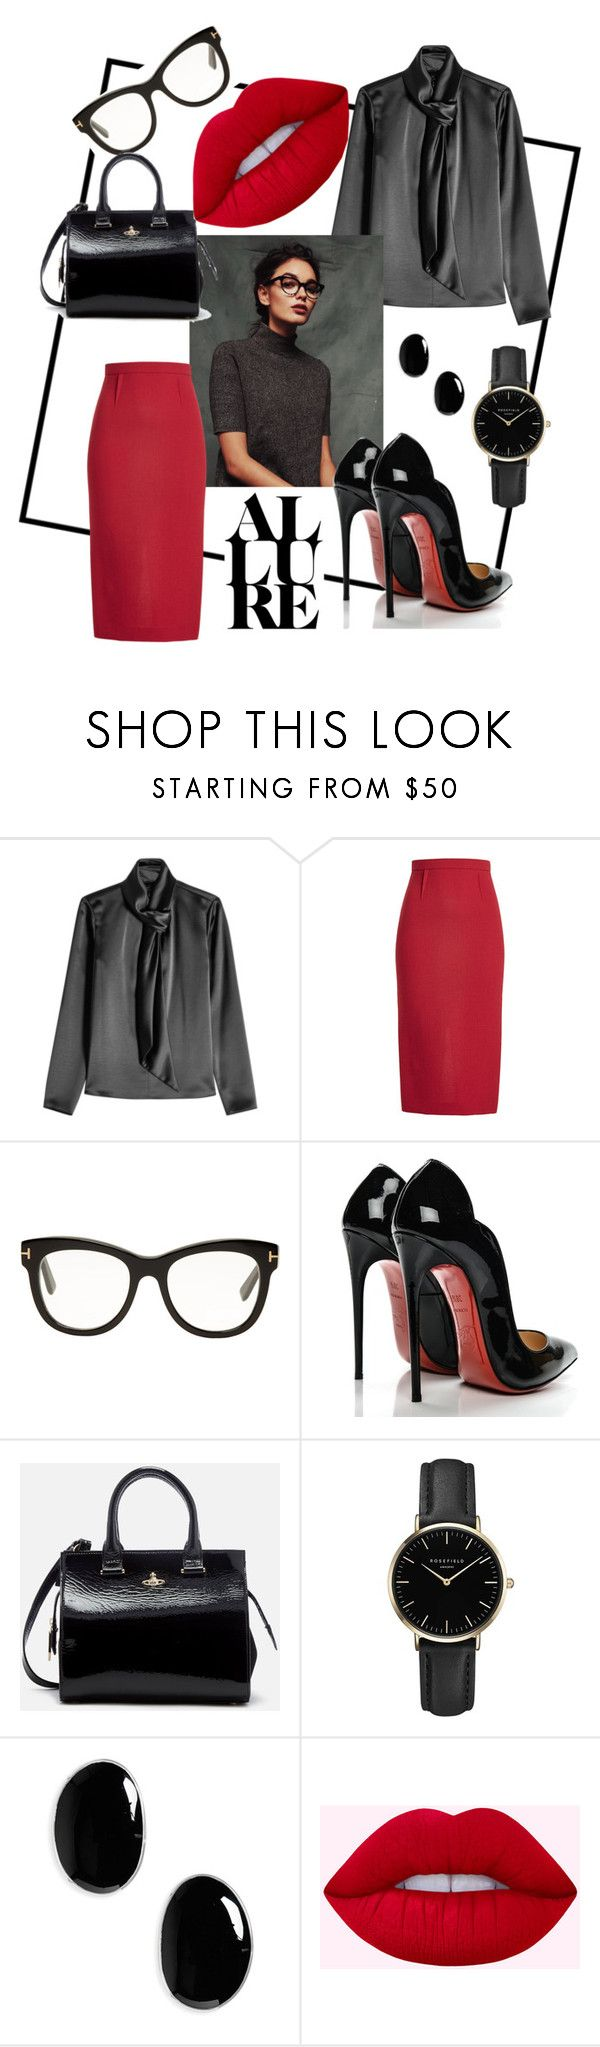 """ALURE"" by lanavons ❤ liked on Polyvore featuring HUGO, Roland Mouret, Tom Ford, Christian Louboutin, Vivienne Westwood, ROSEFIELD, Sophie Buhai and glasses"